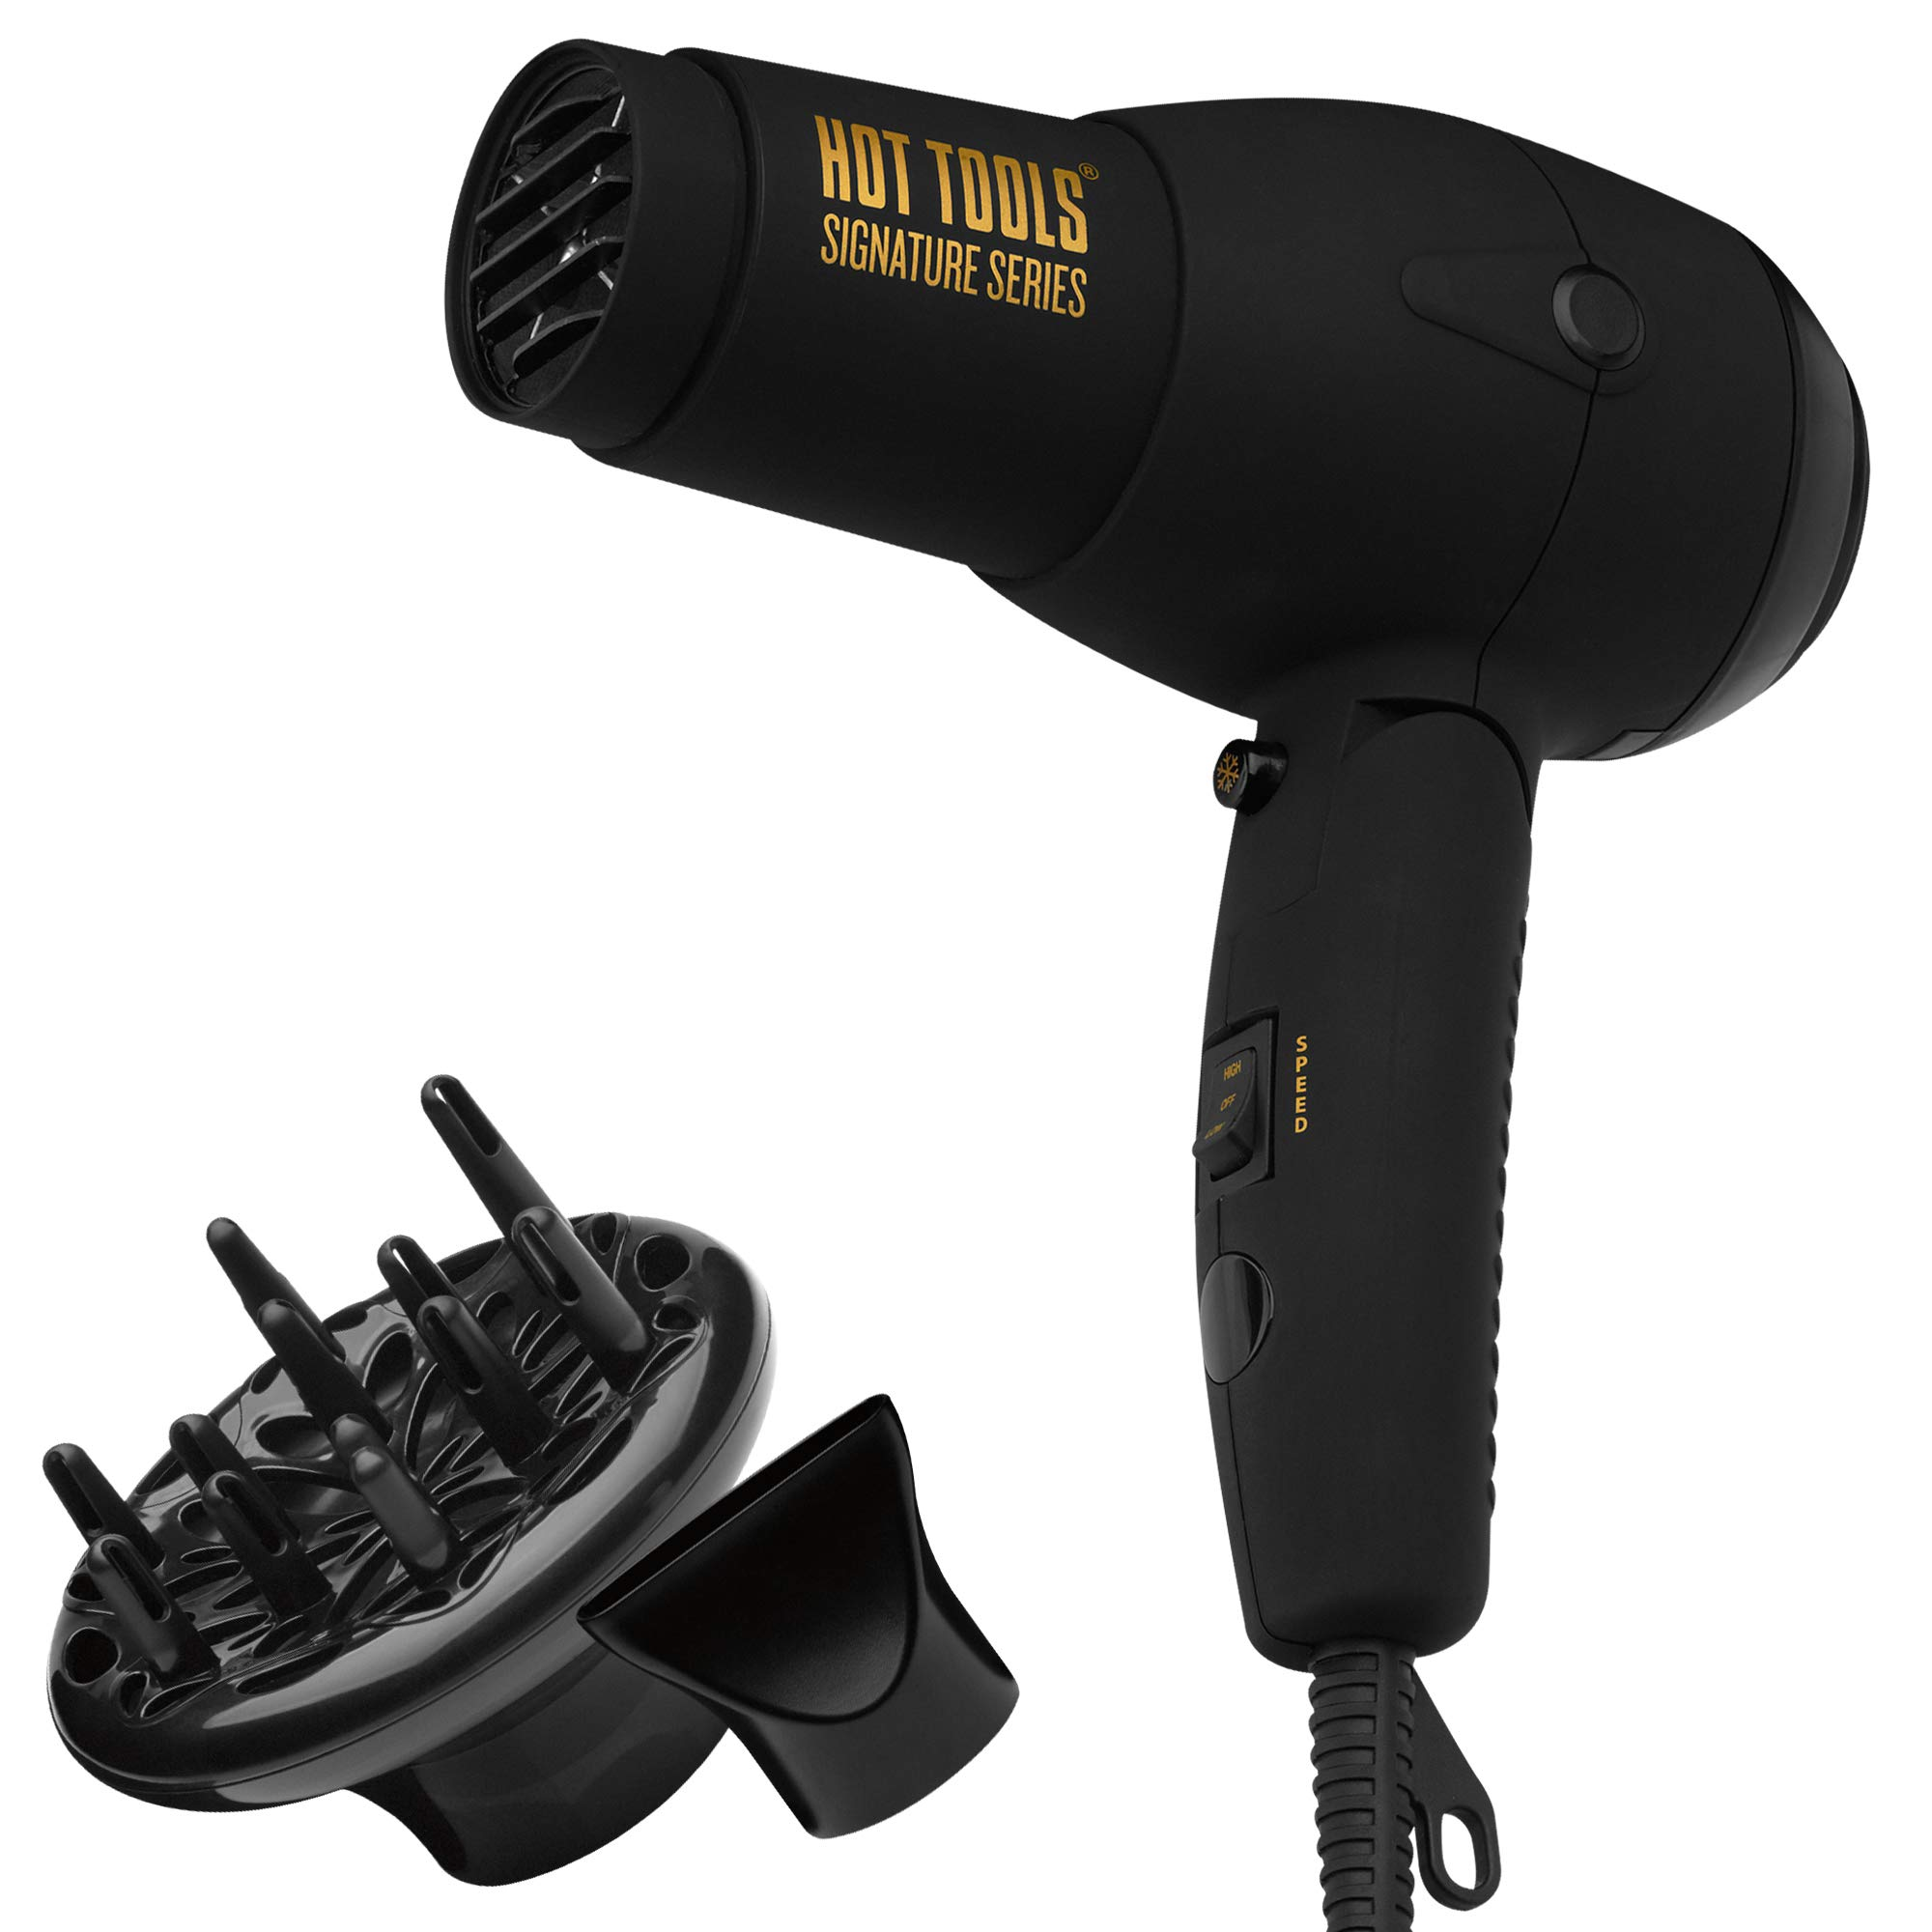 HOT TOOLS Signature Series 1875W Ionic Travel Hair Dryer by HOT TOOLS